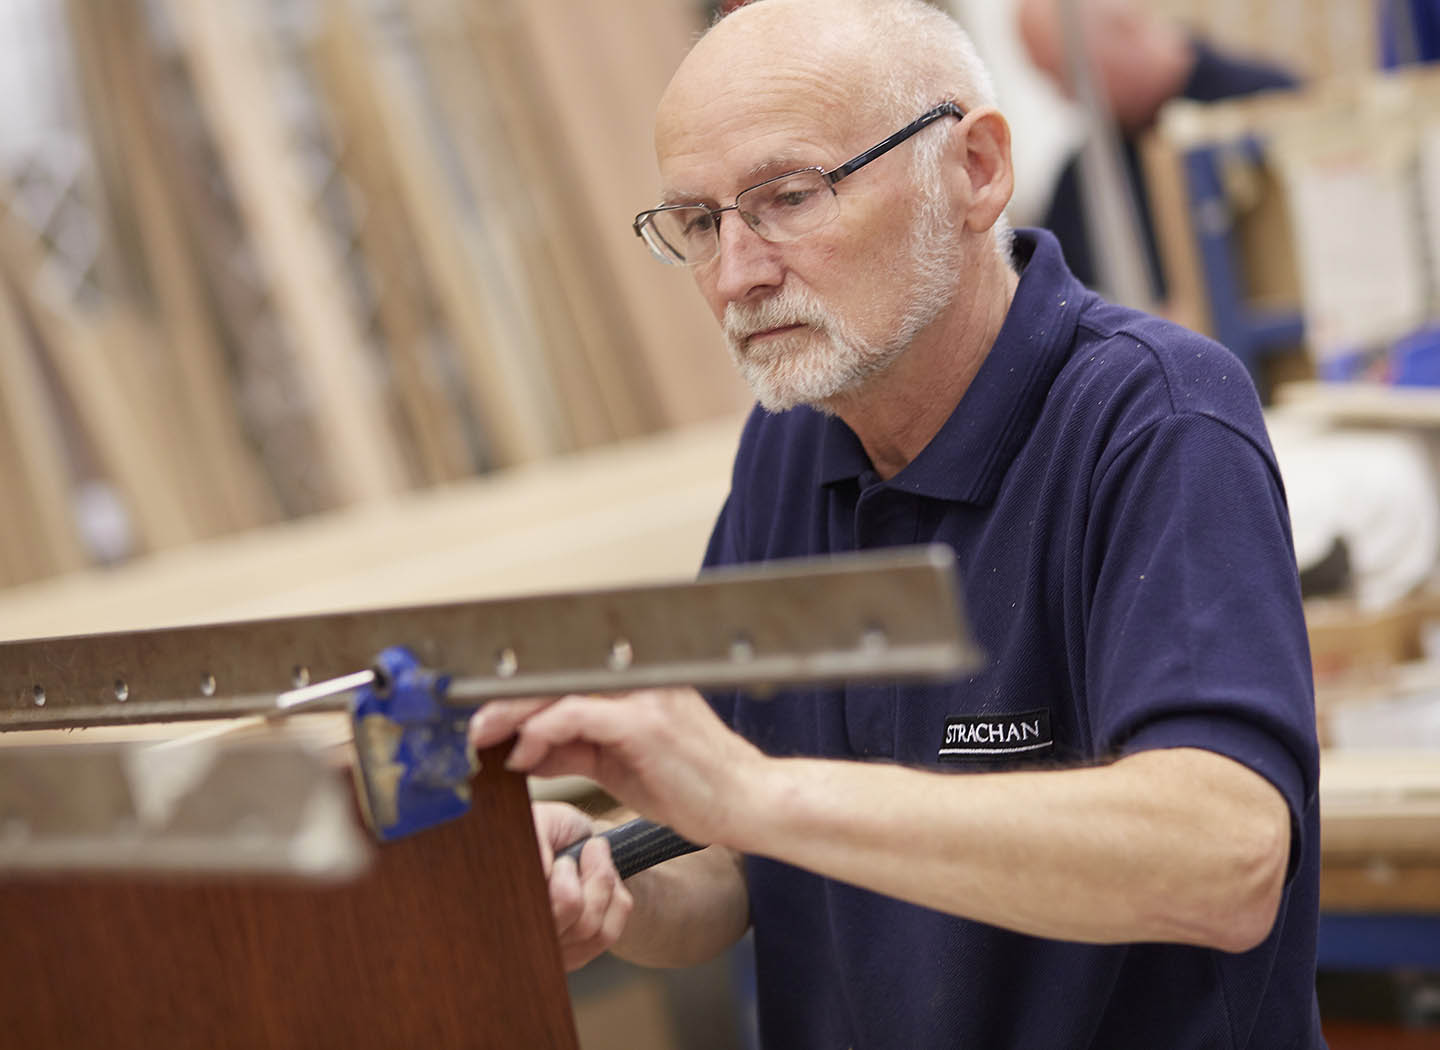 Work for the Strachan family of furniture makers